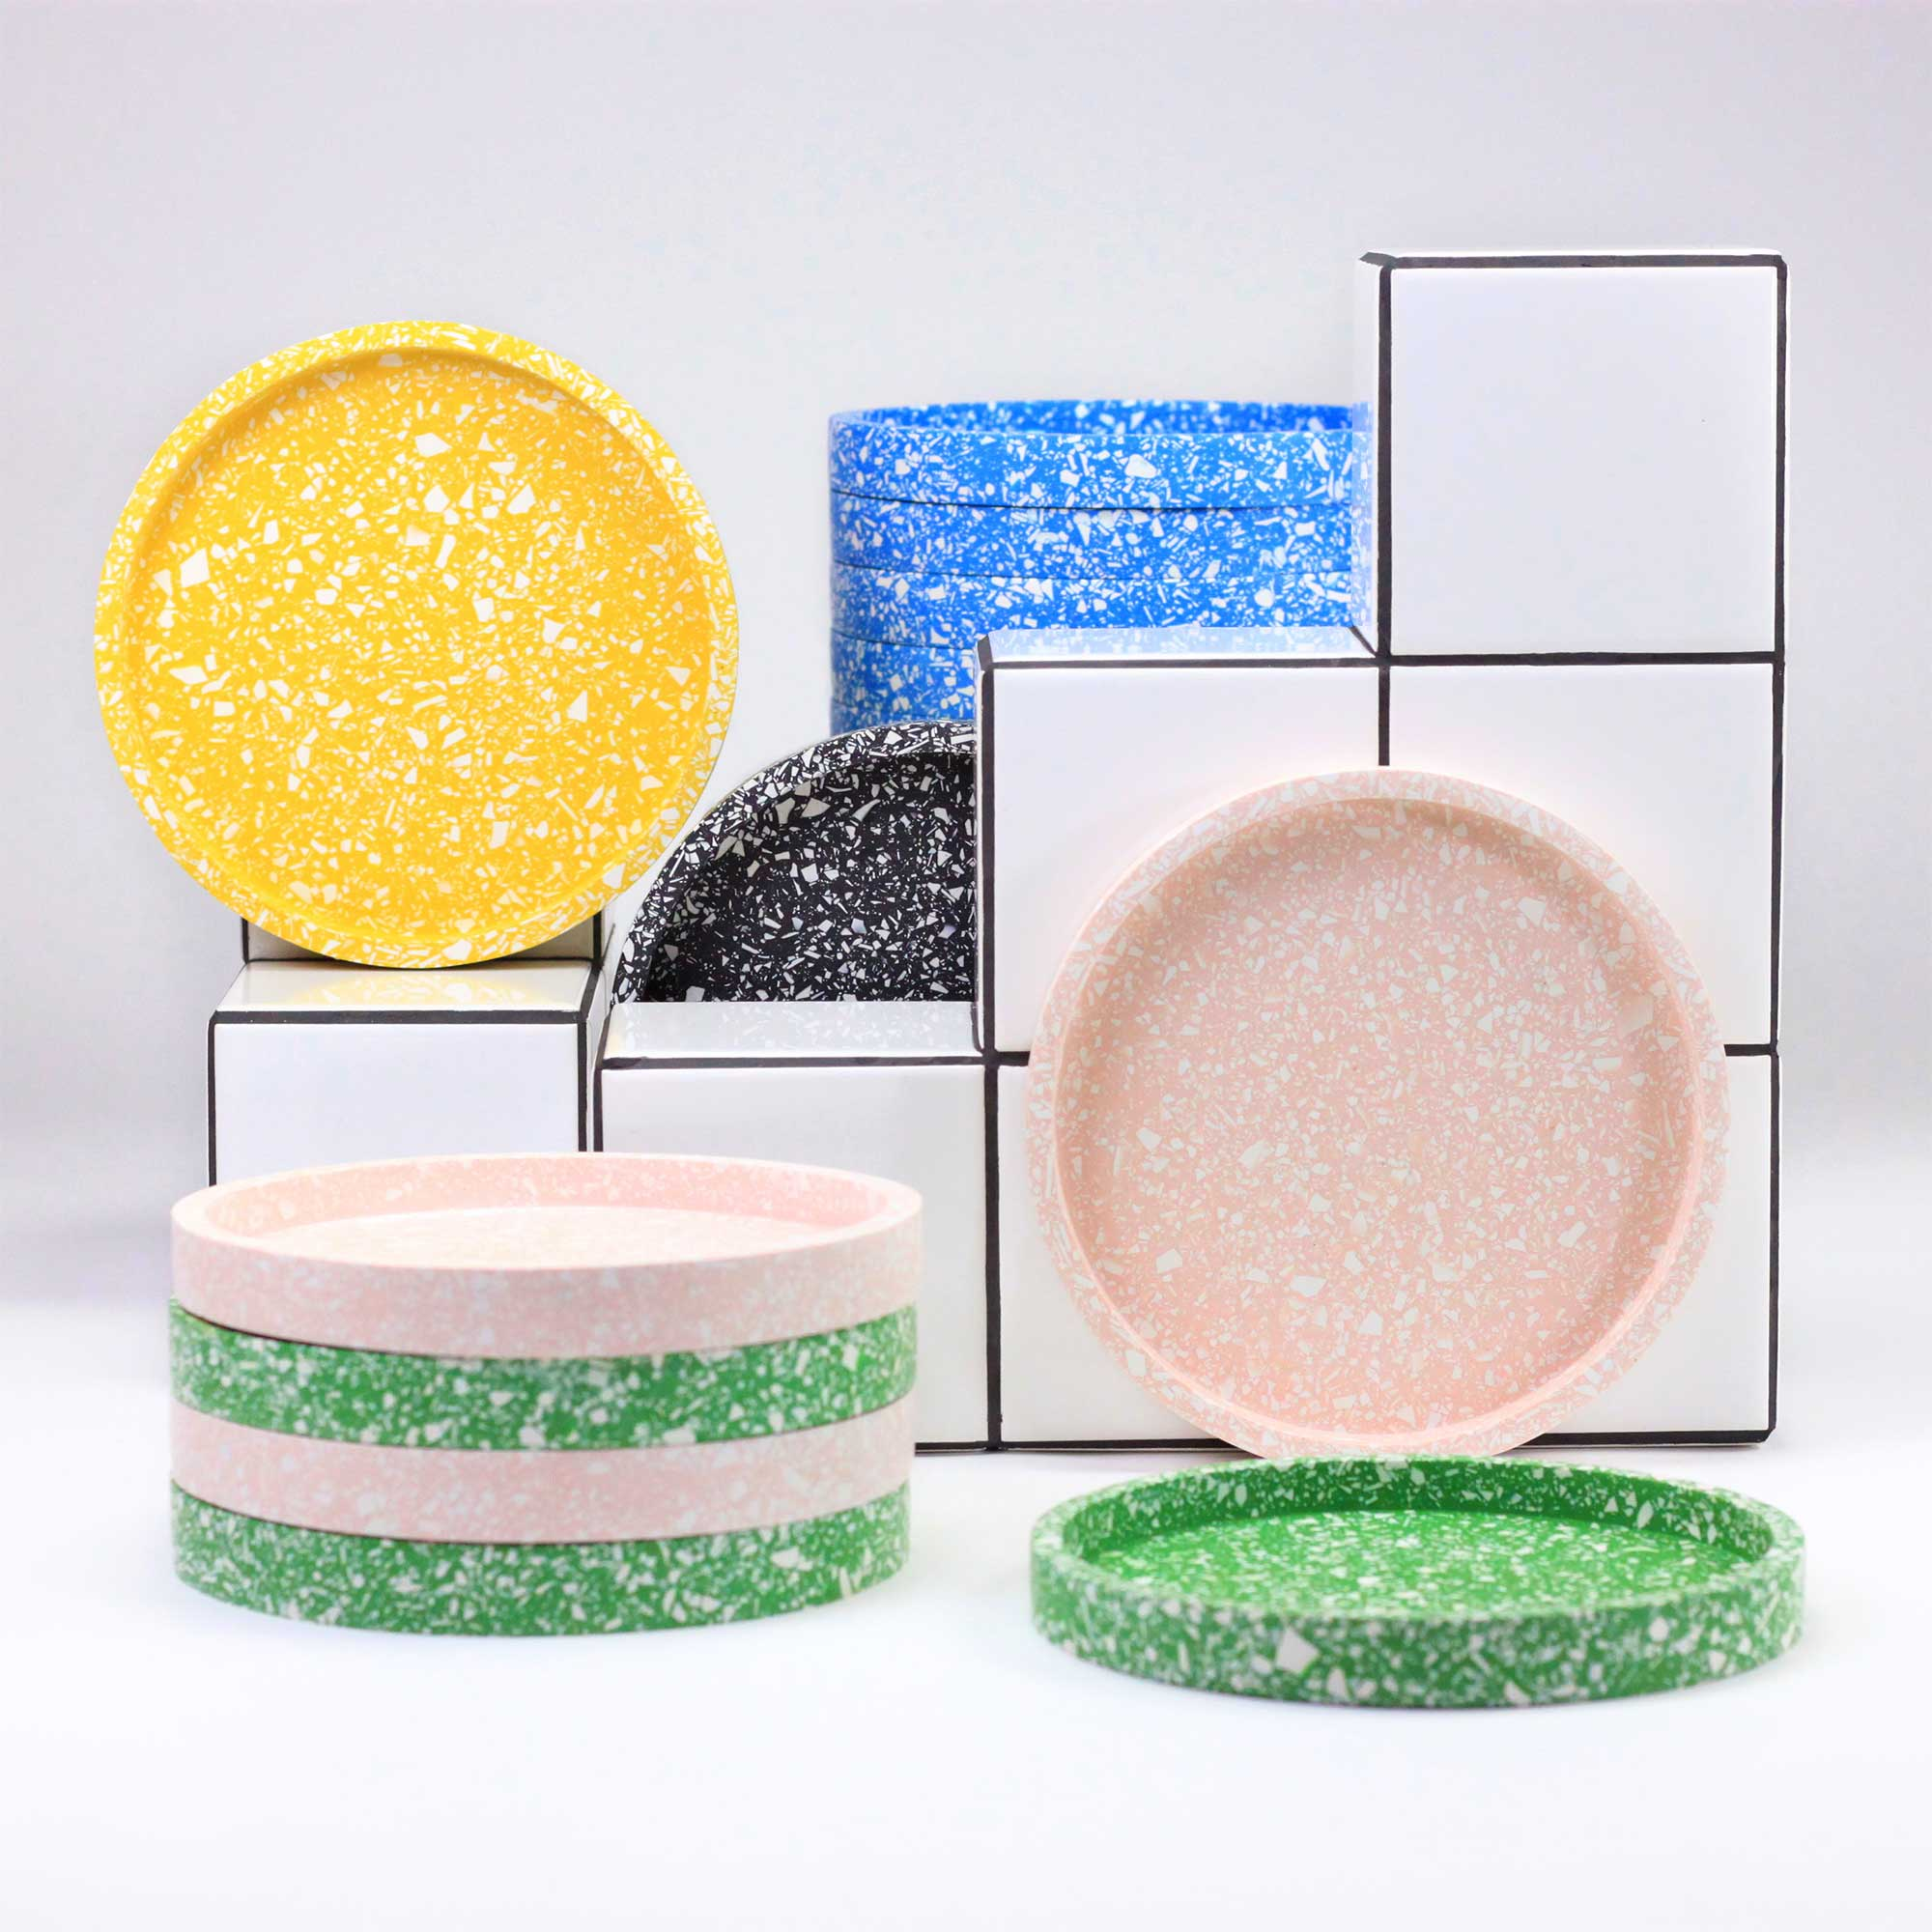 ROUND TRAY TERRAZZO LIKE KATIE GILLIES – 5 COLORS